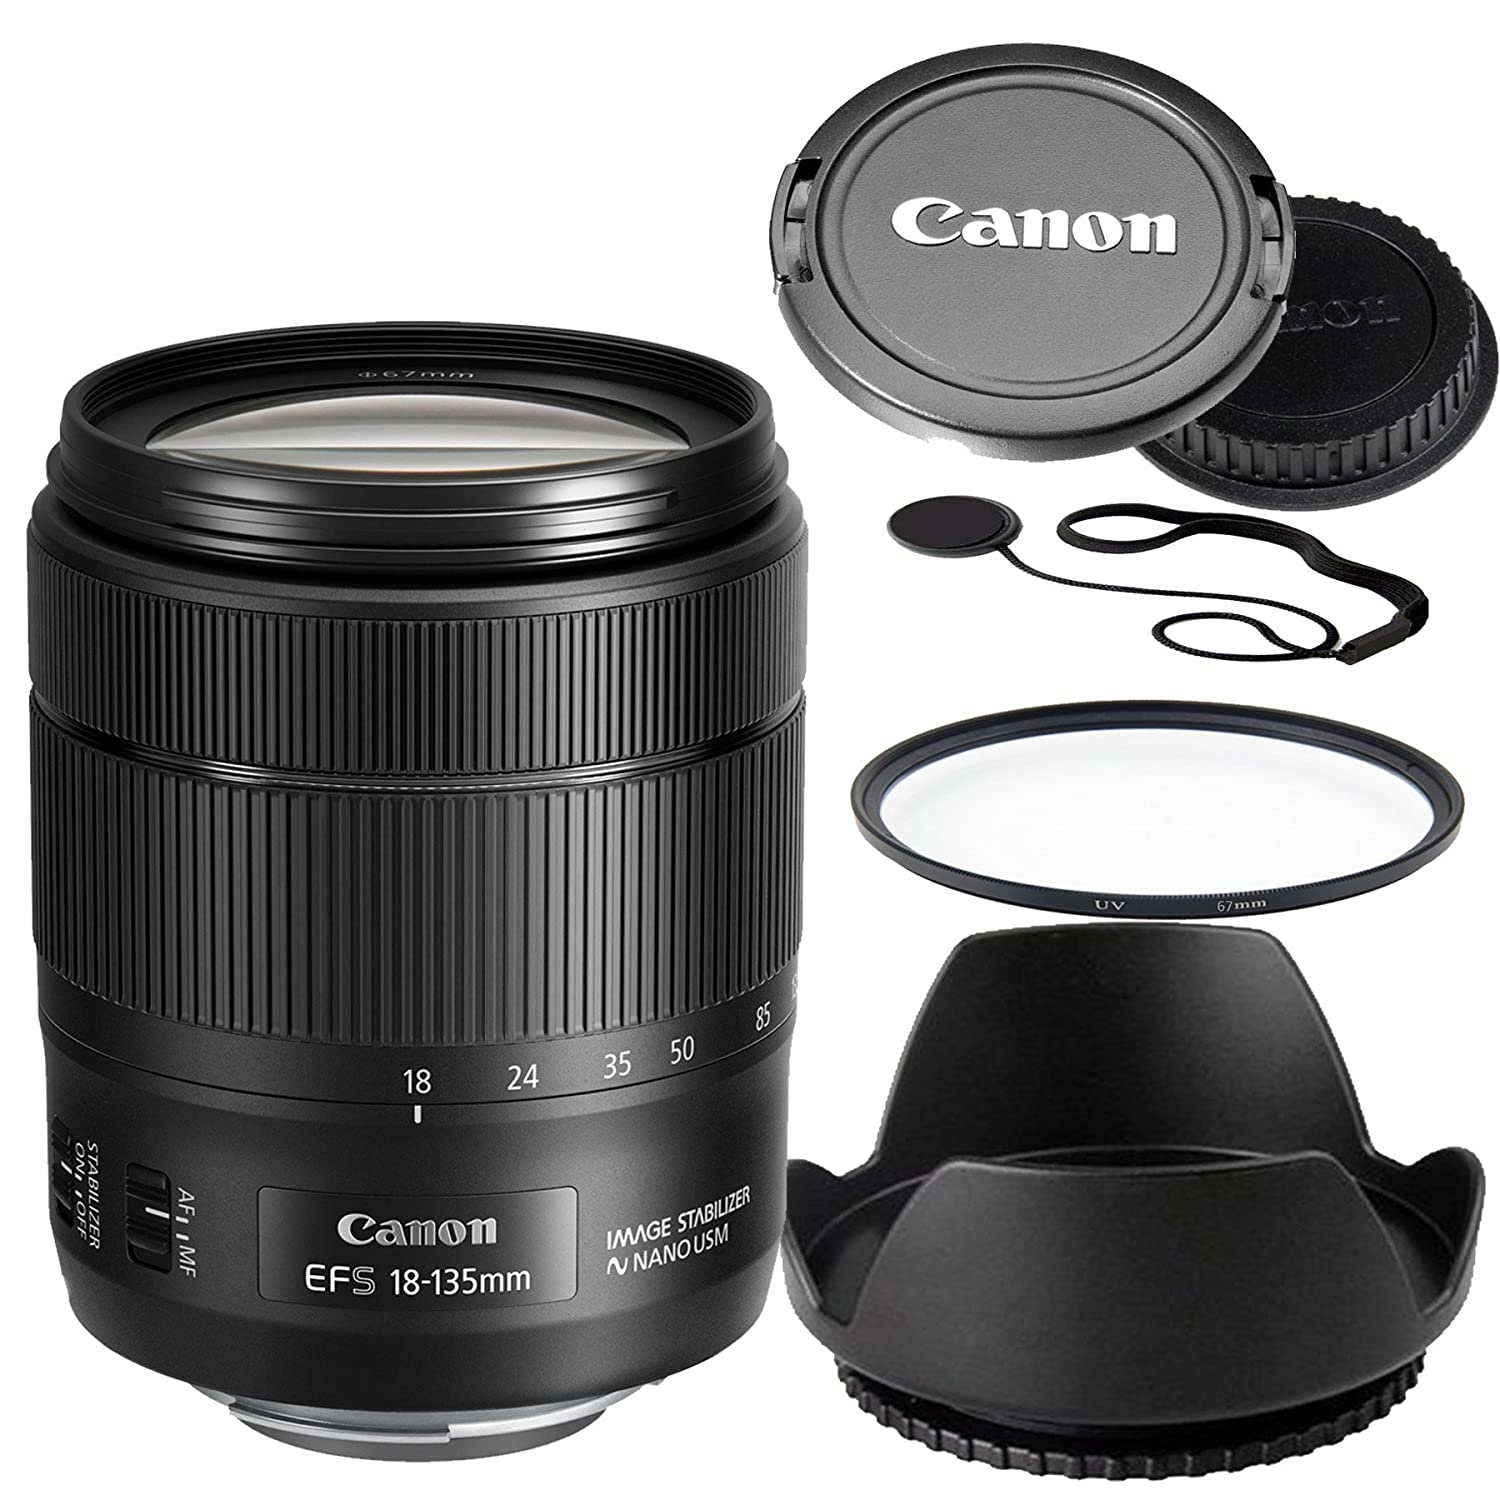 Canon 18-135mm f/3.5-5.6 IS USM Lens(White Box)